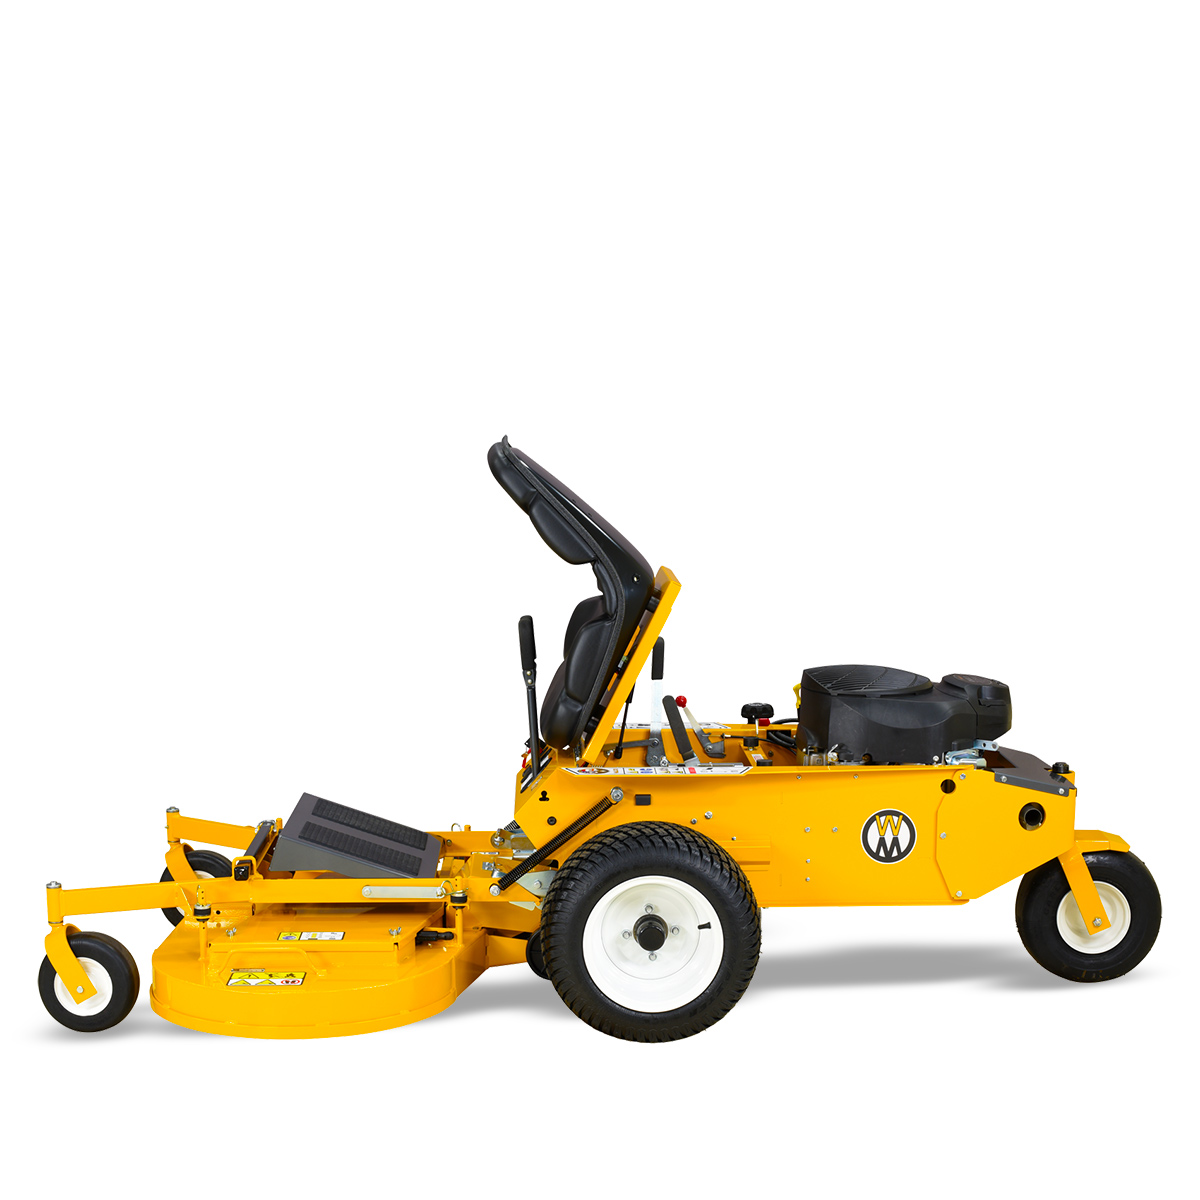 Walker Mower Model RS48R - 48 inch side discharge